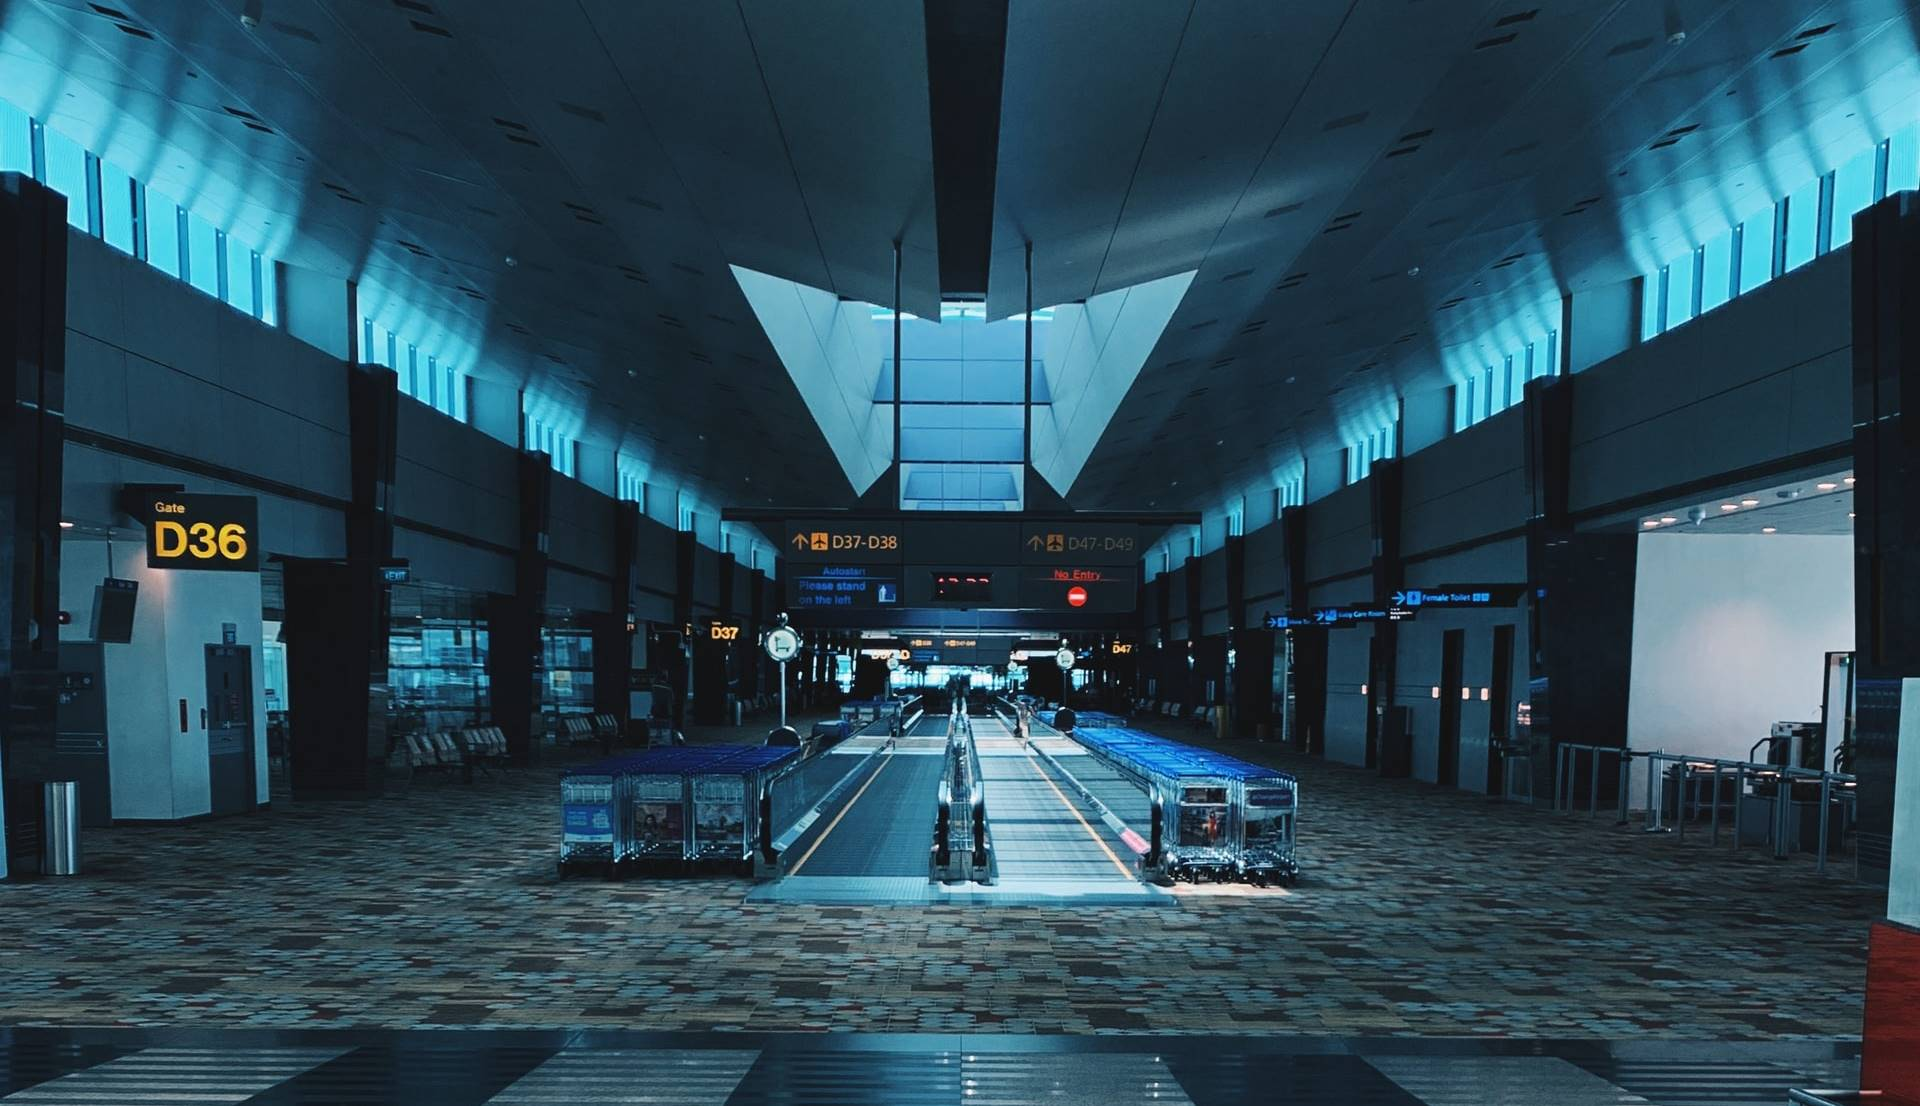 Ilustrasi Terminal Changi Airport Singapura. Photo by Grace Lim on Unsplash